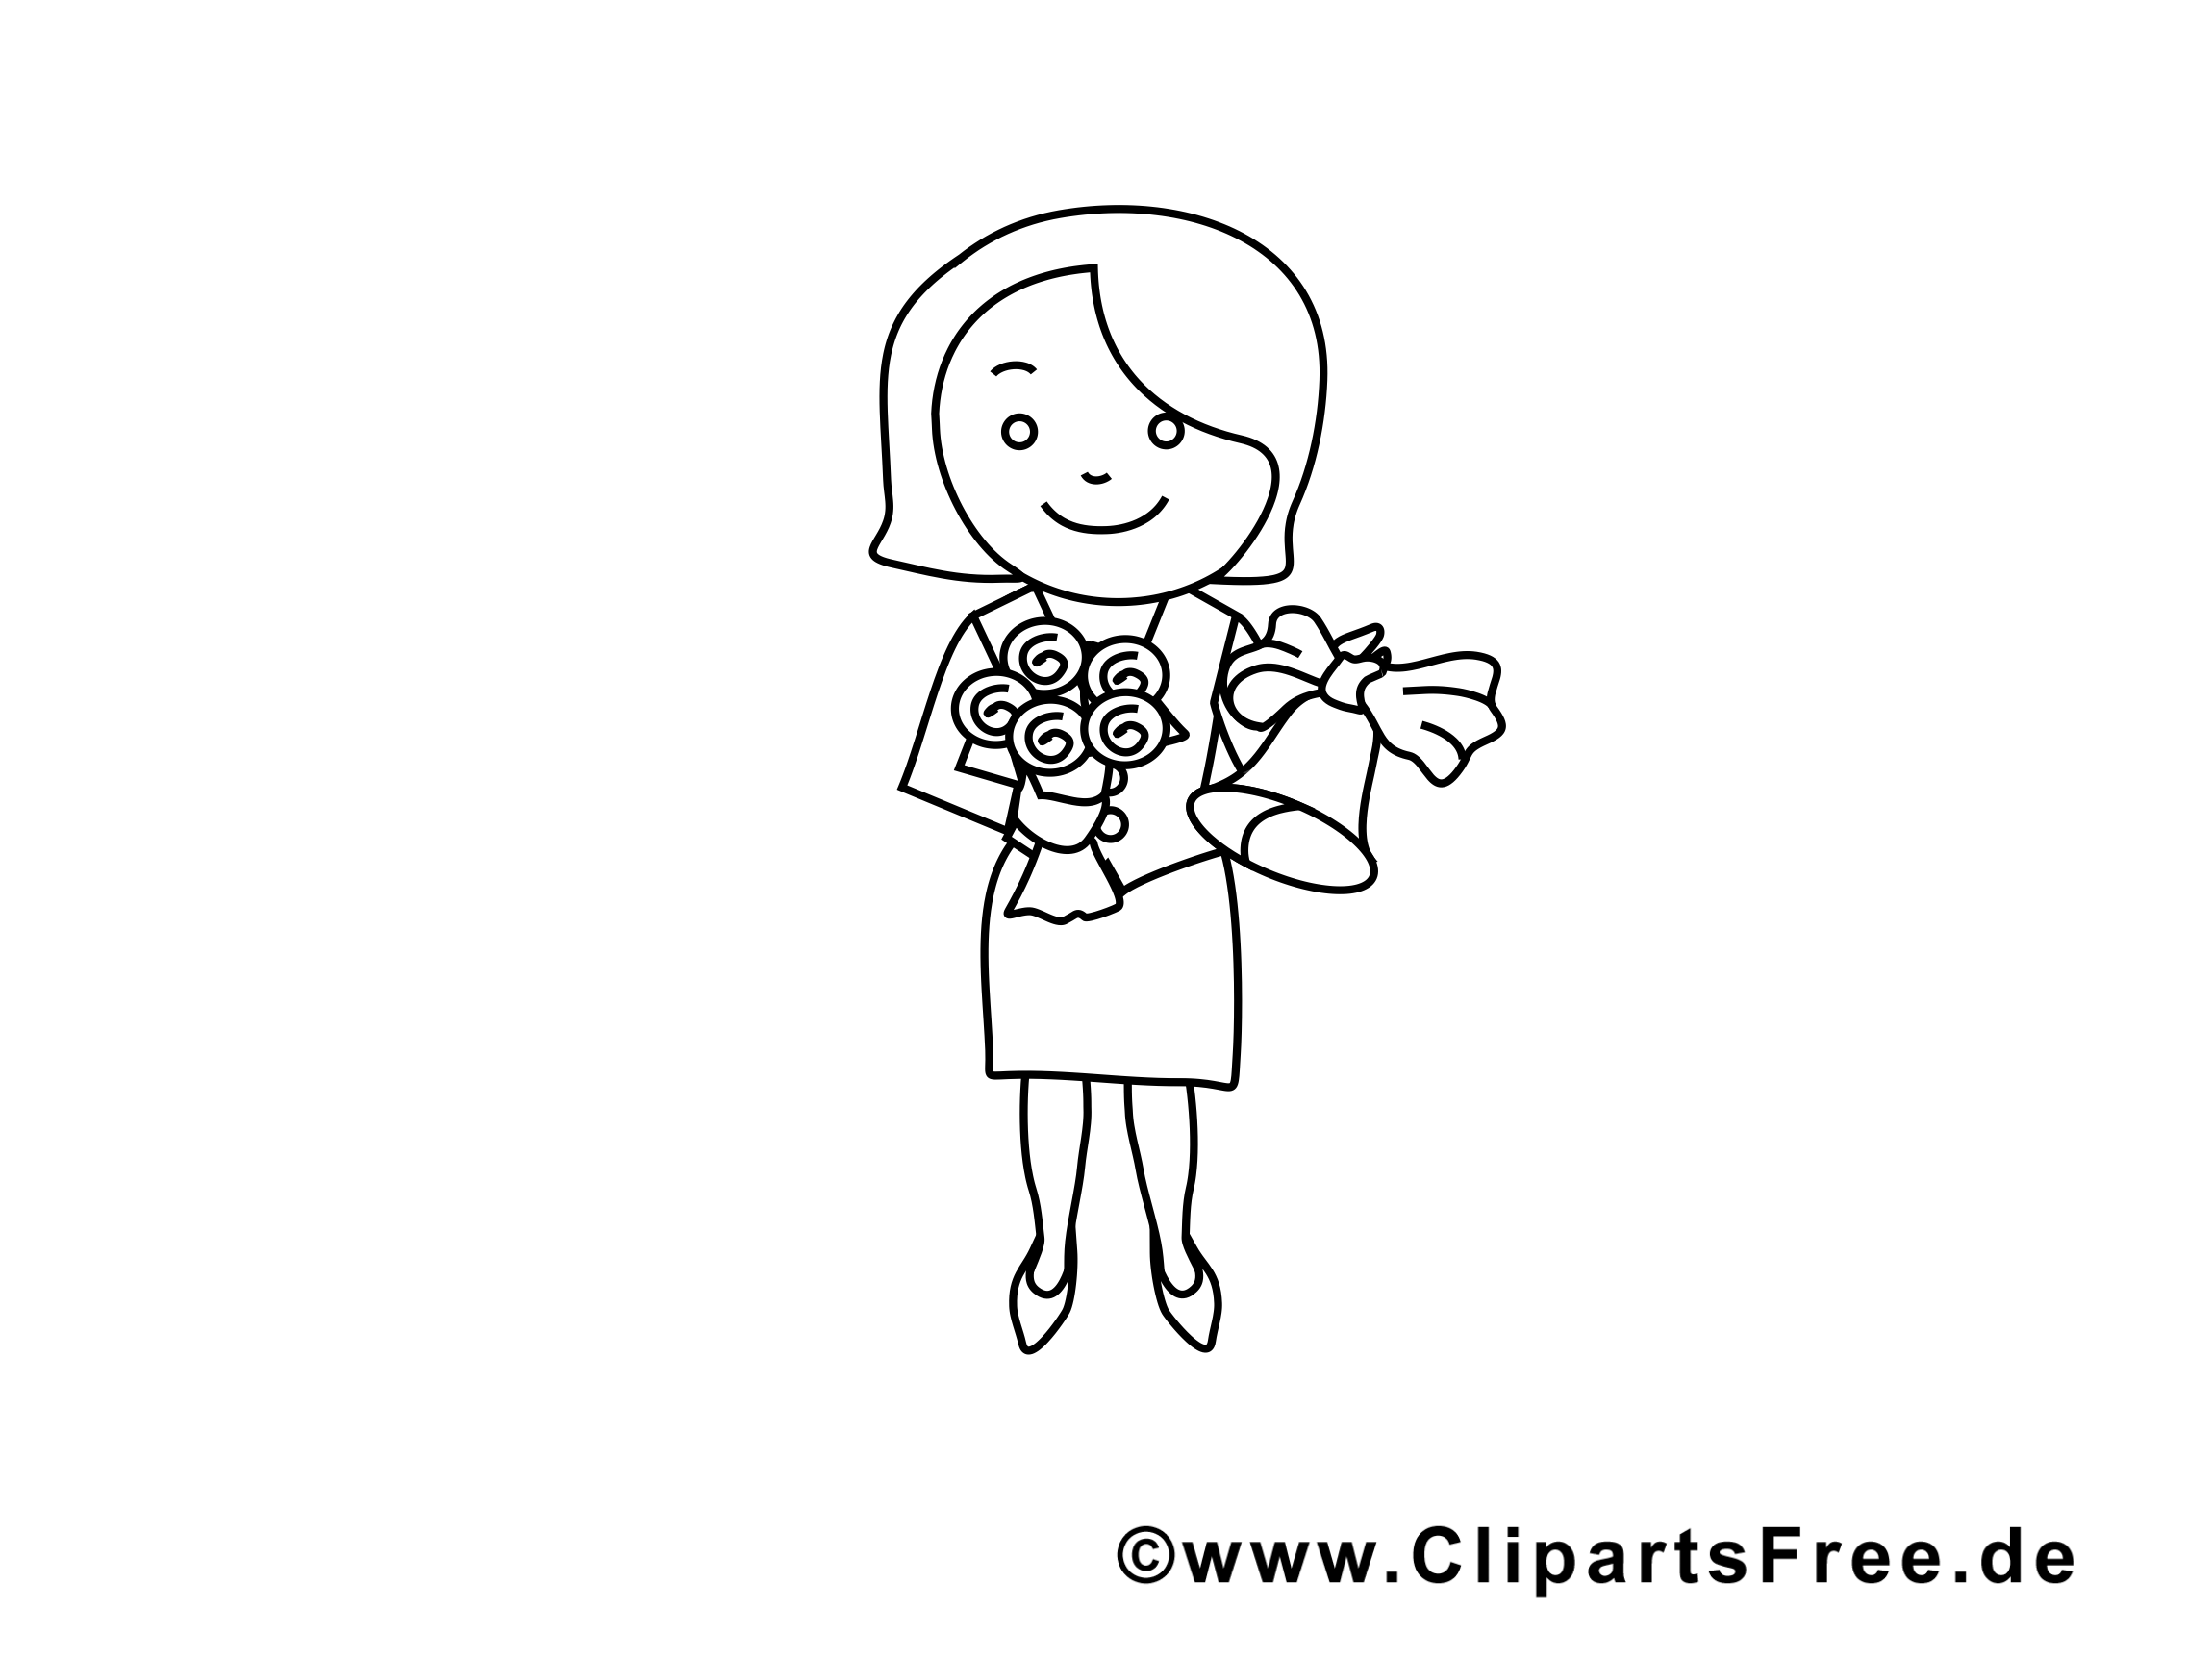 Coloriage Fille Maternelle.Coloriage Fille Maternelle Image A Telecharger Maternelle